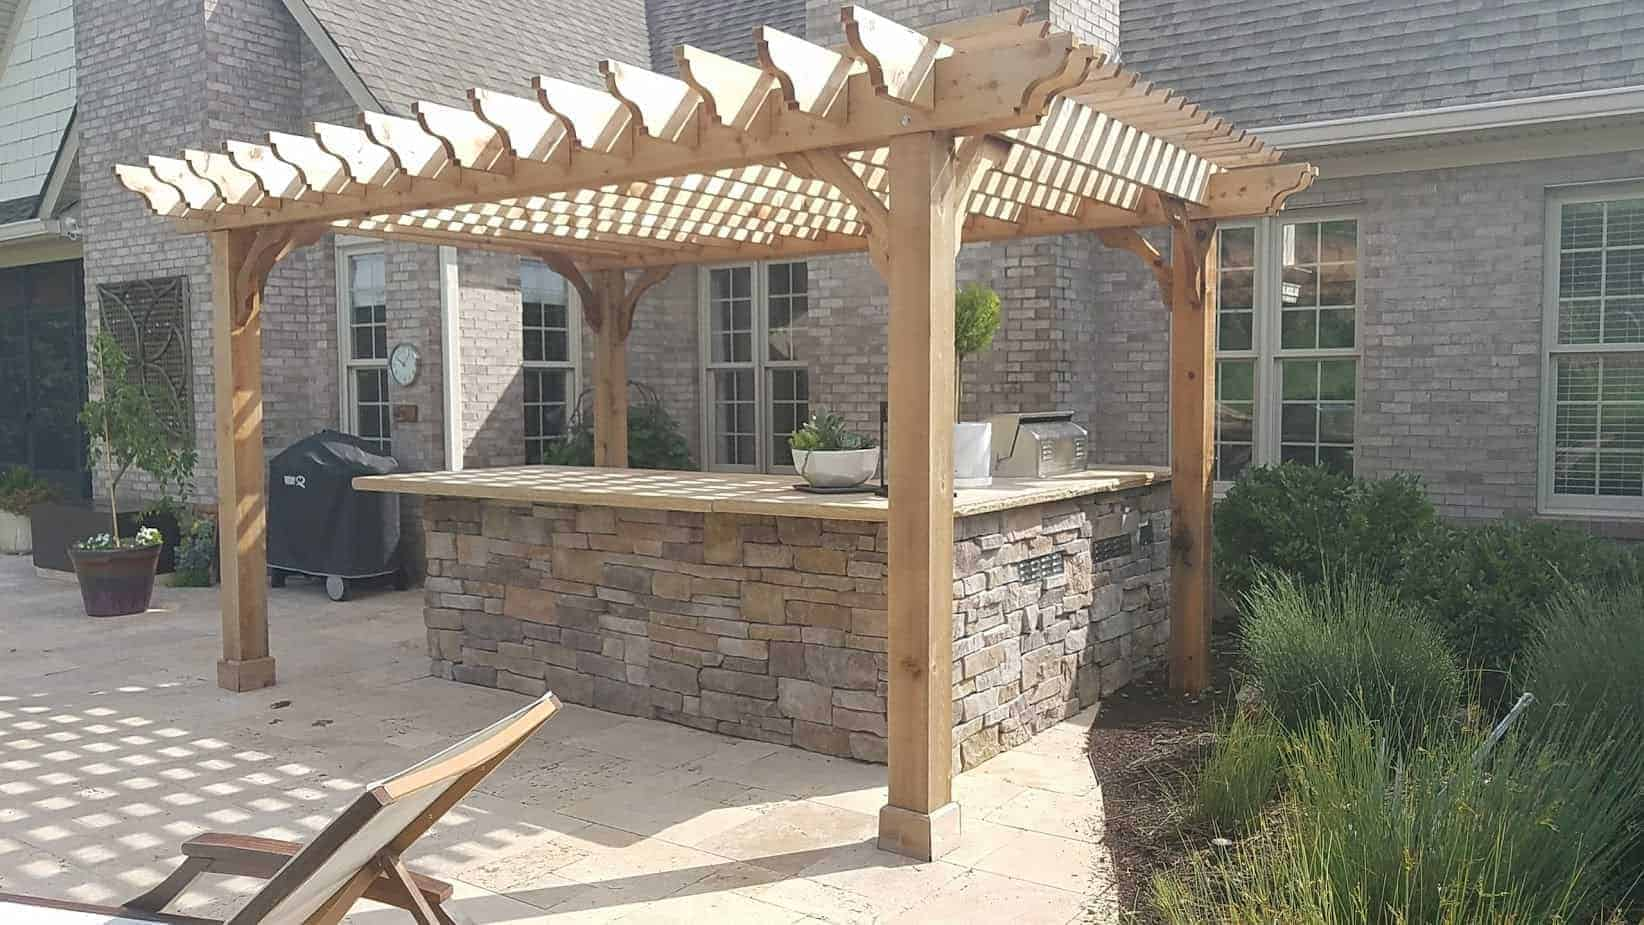 12x16 Pergola Kit Buy The Big Kahuna 12x16 Wood Pergola